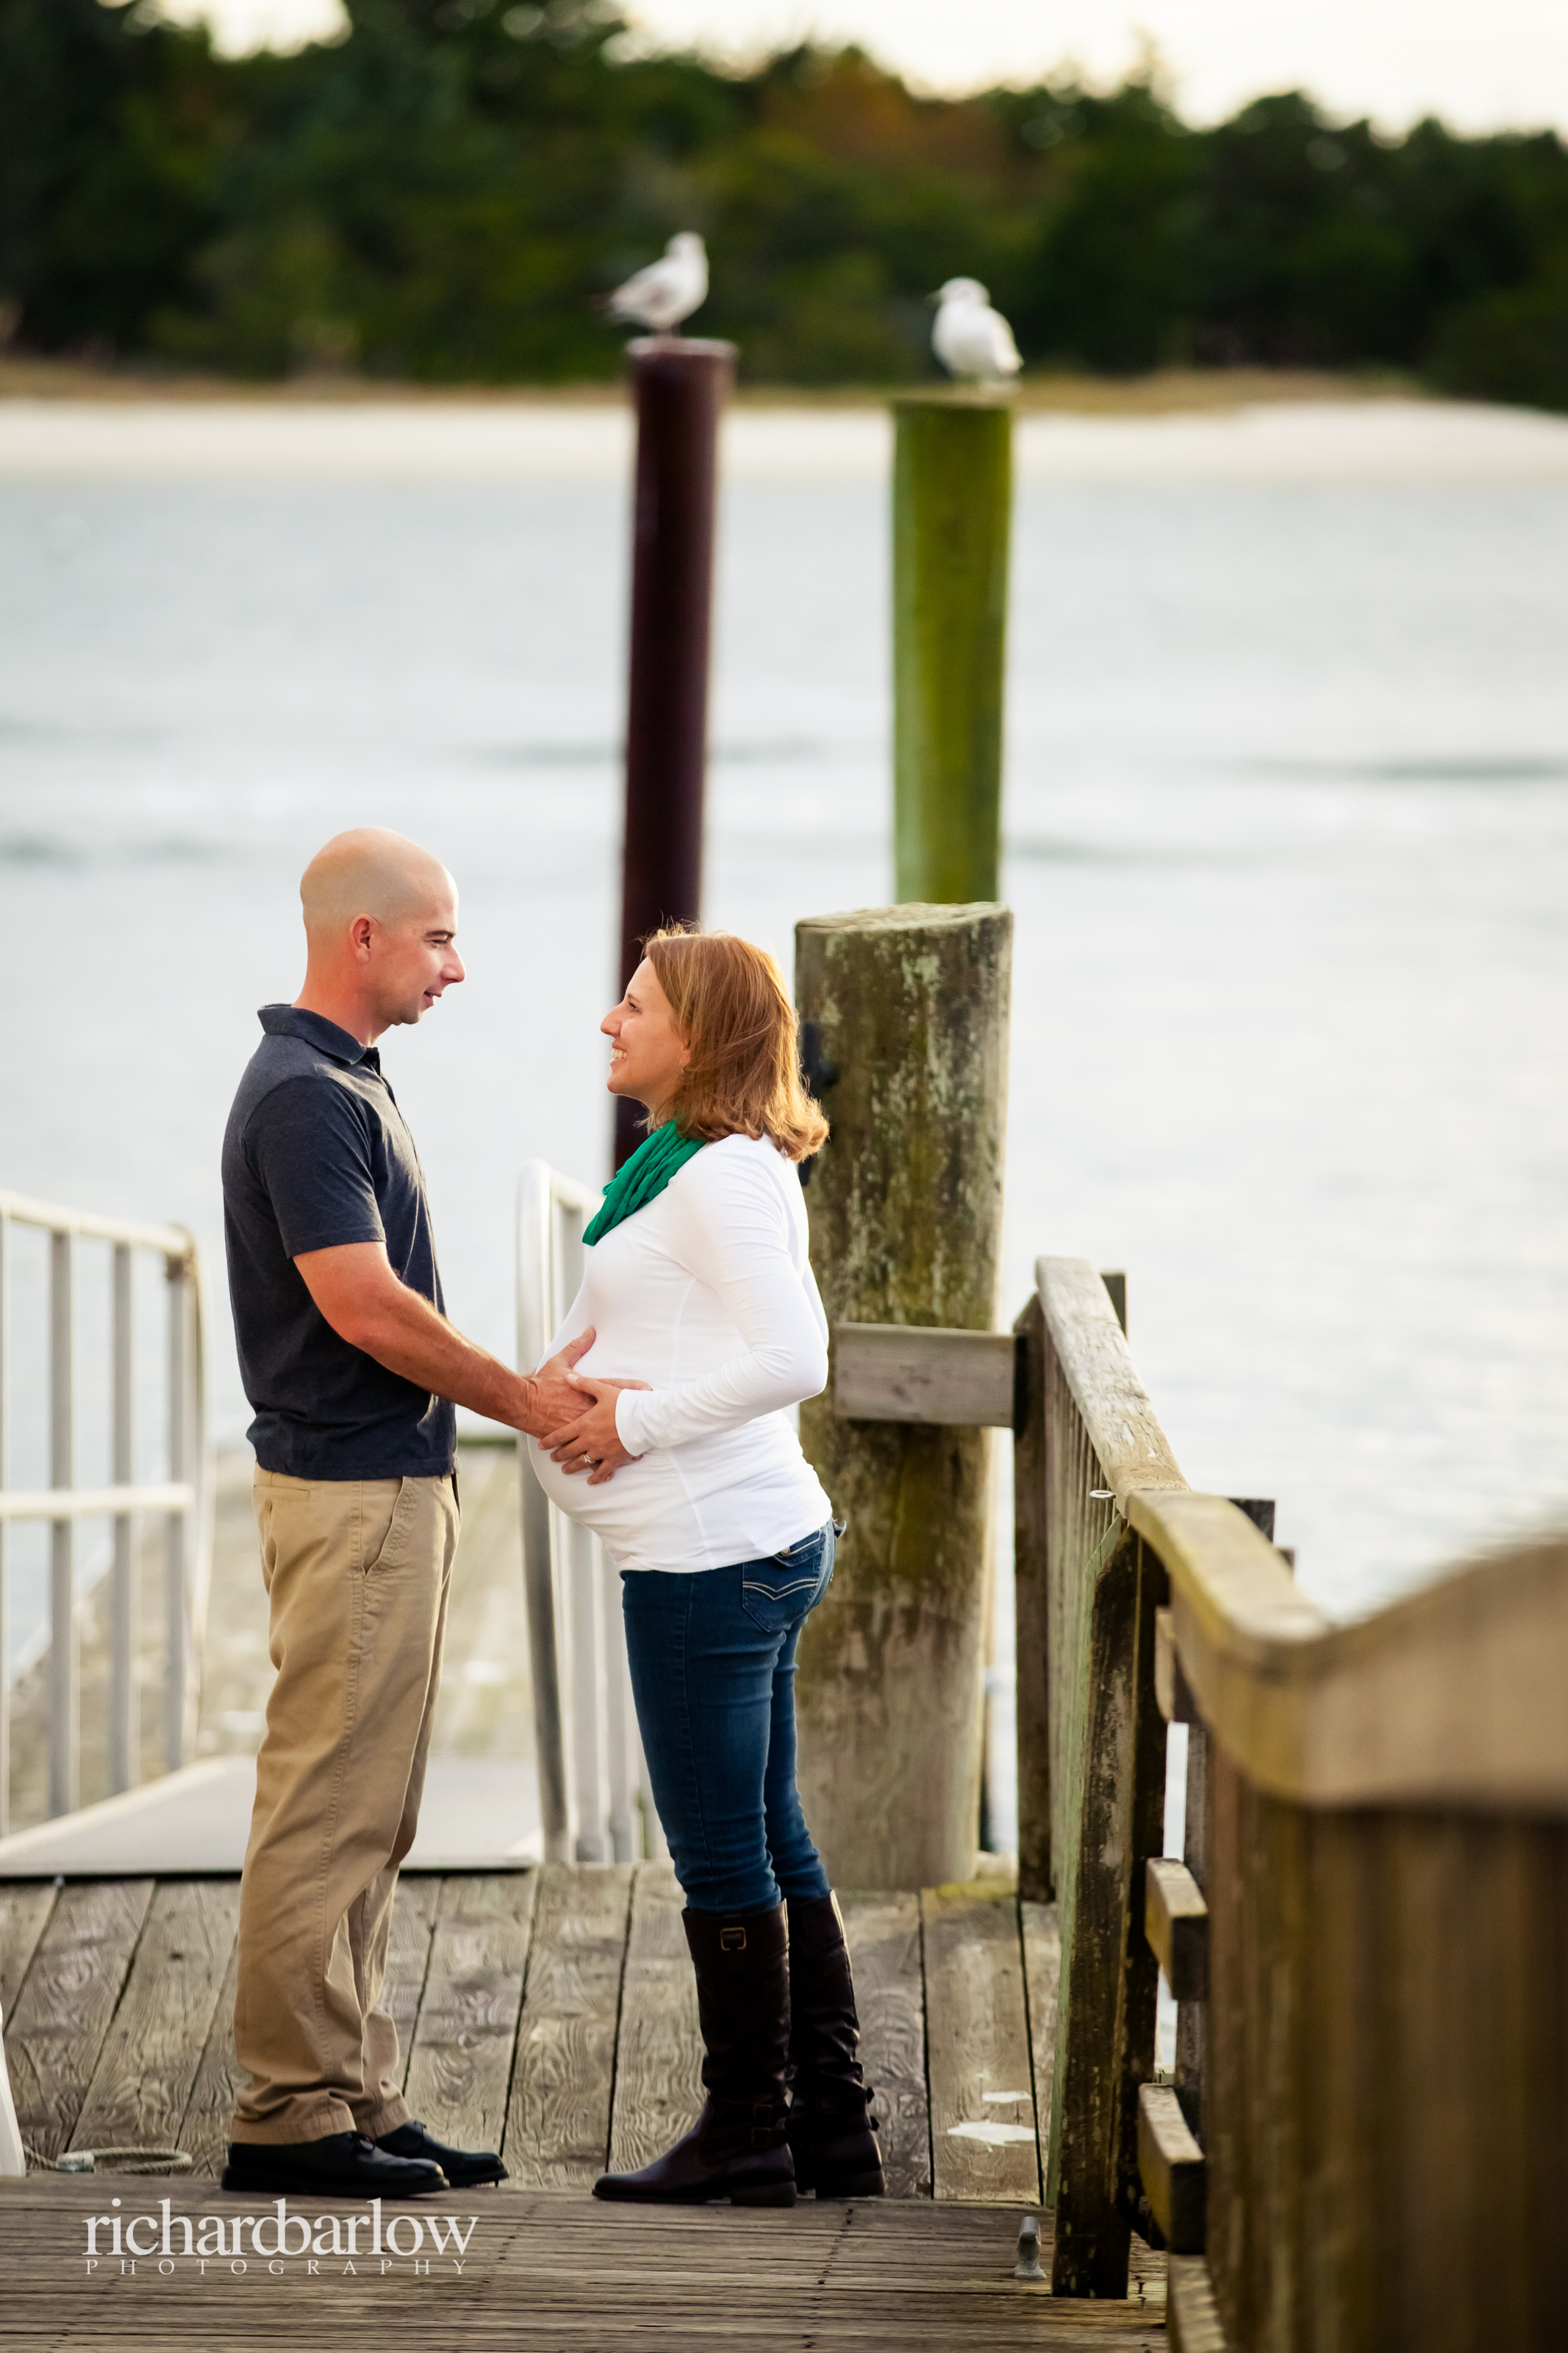 richard barlow photography - Sarah Maternity Session - Beaufort waterfront-14.jpg